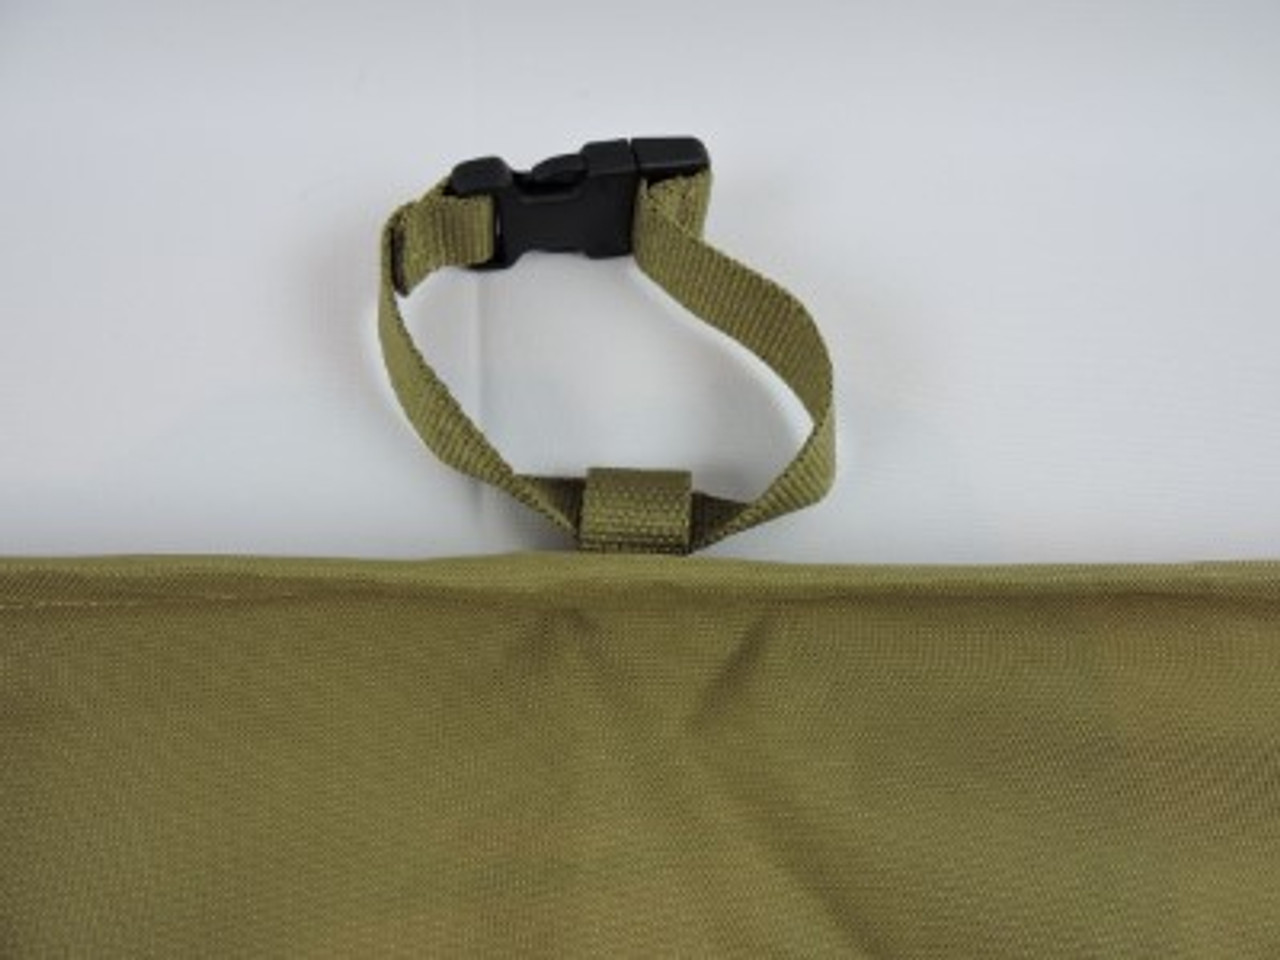 Savanna strap and buckle system for secure tie down